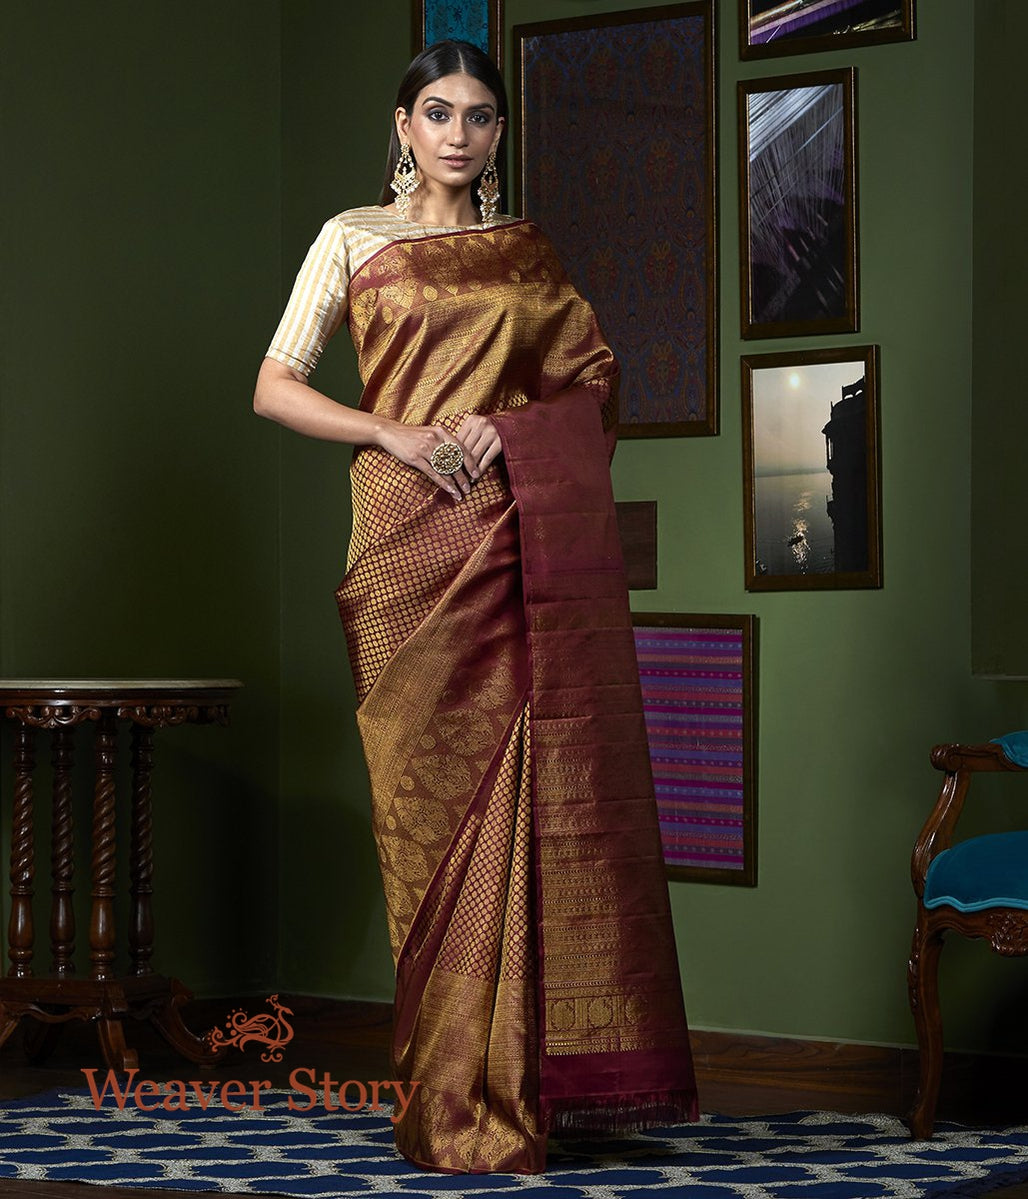 Handwoven Maroon All Over Zari Kanjivaram Saree